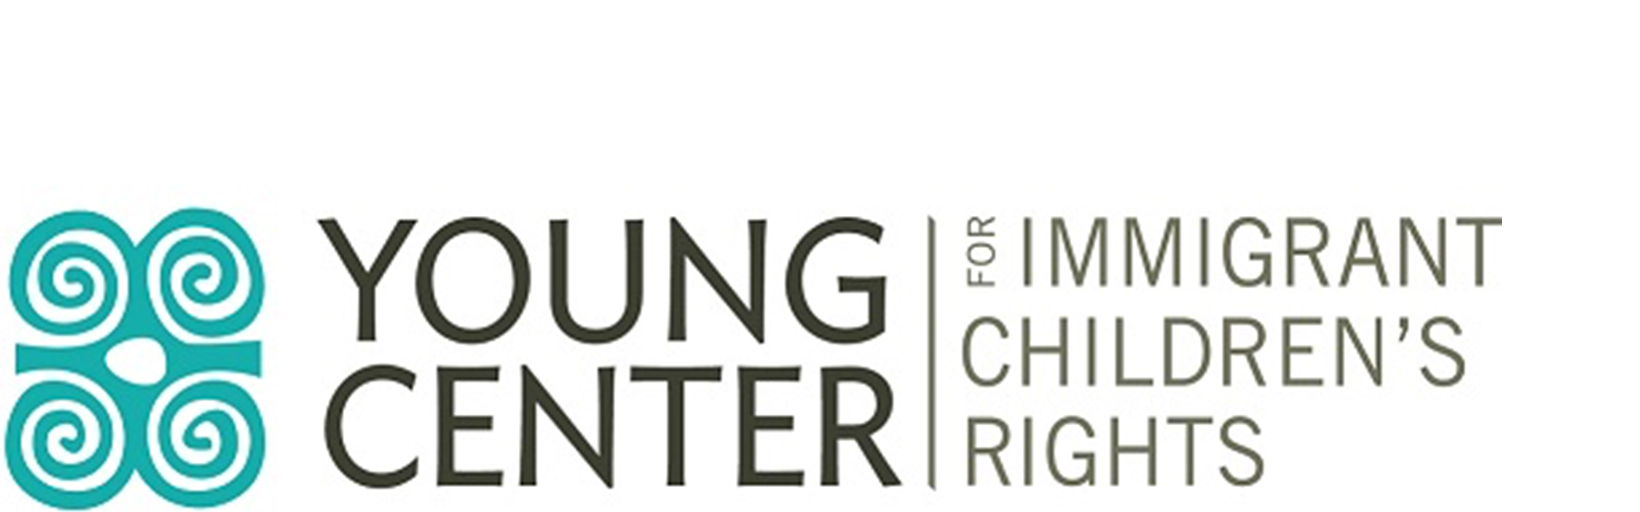 Young Center for Immigrant Children's Rights